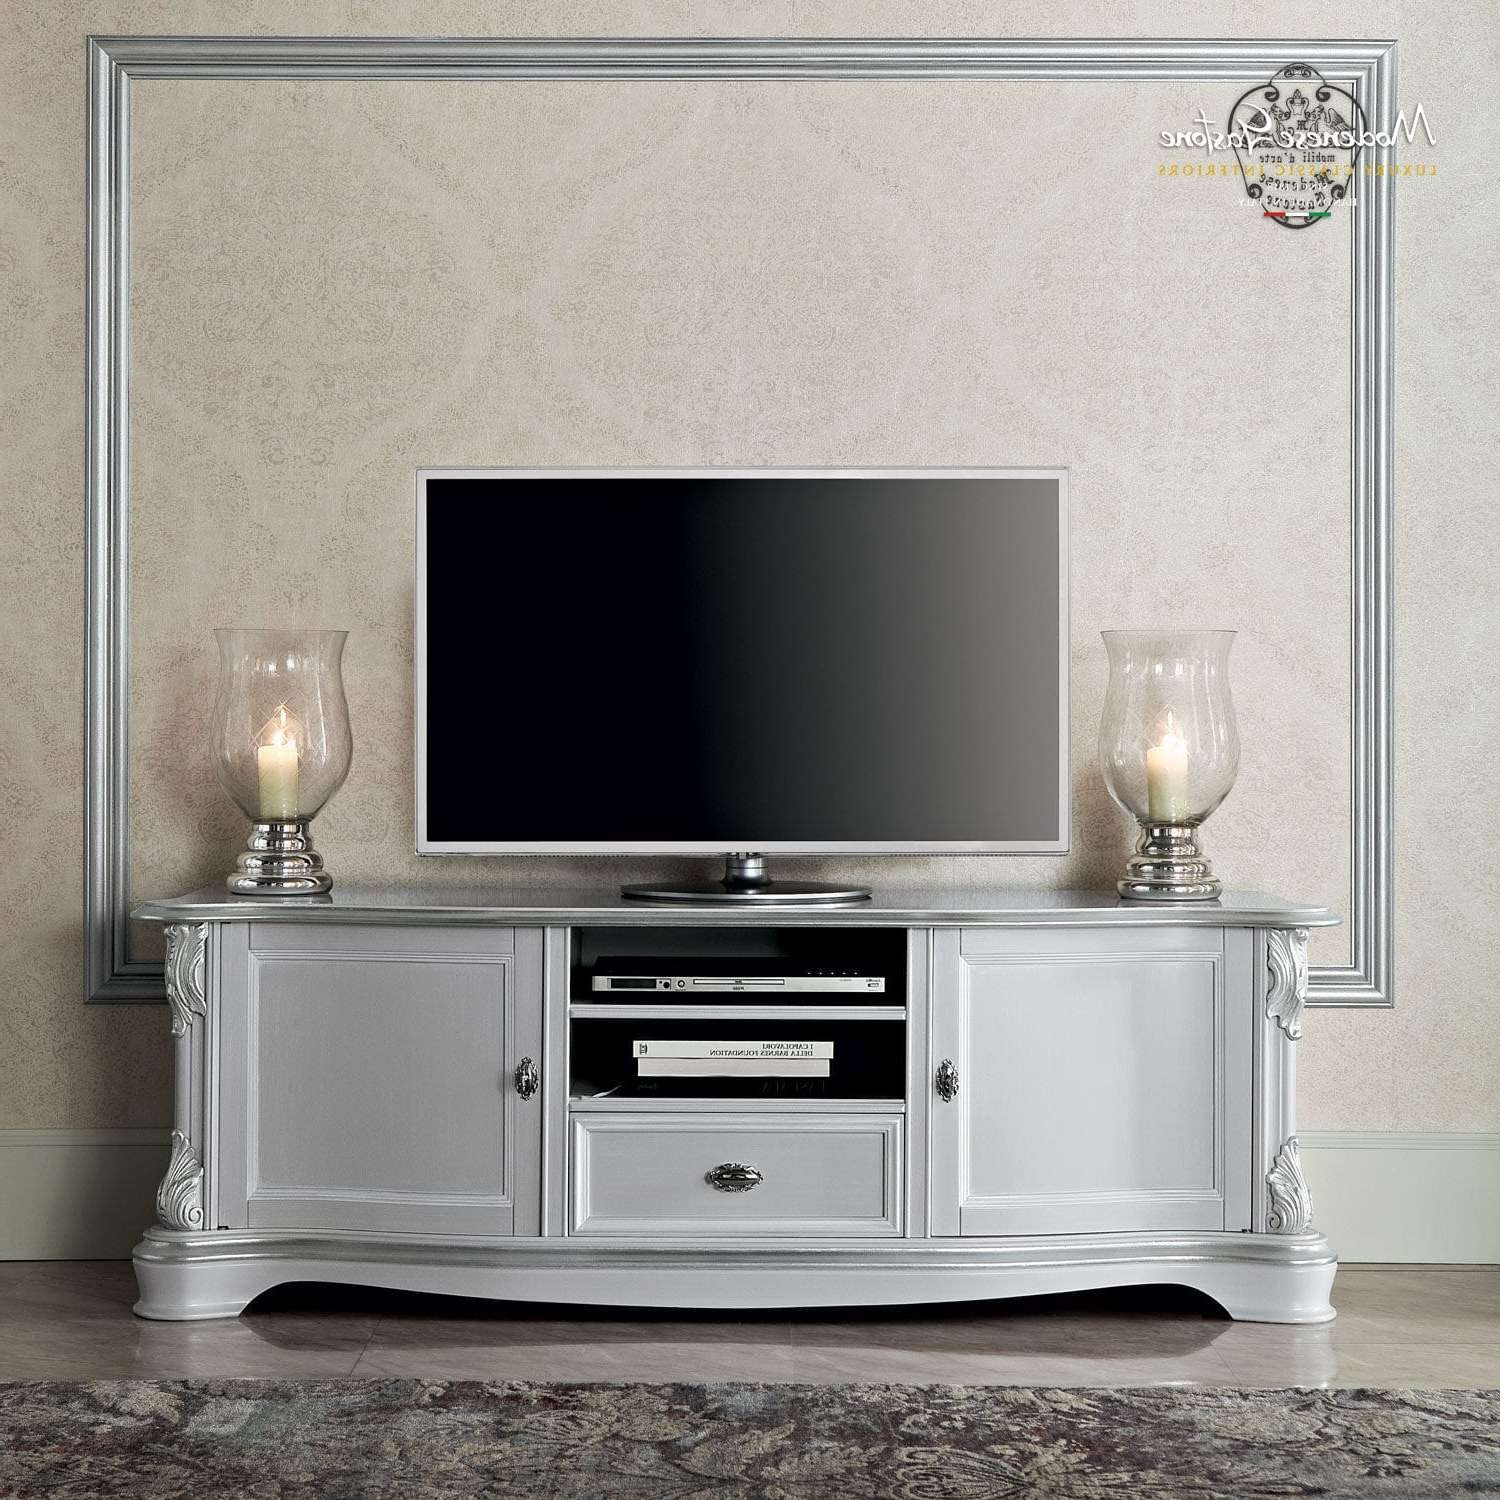 Classic Tv Cabinet / Solid Wood – Bella Vita – Modenese Gastone With Regard To Luxury Tv Stands (View 4 of 15)